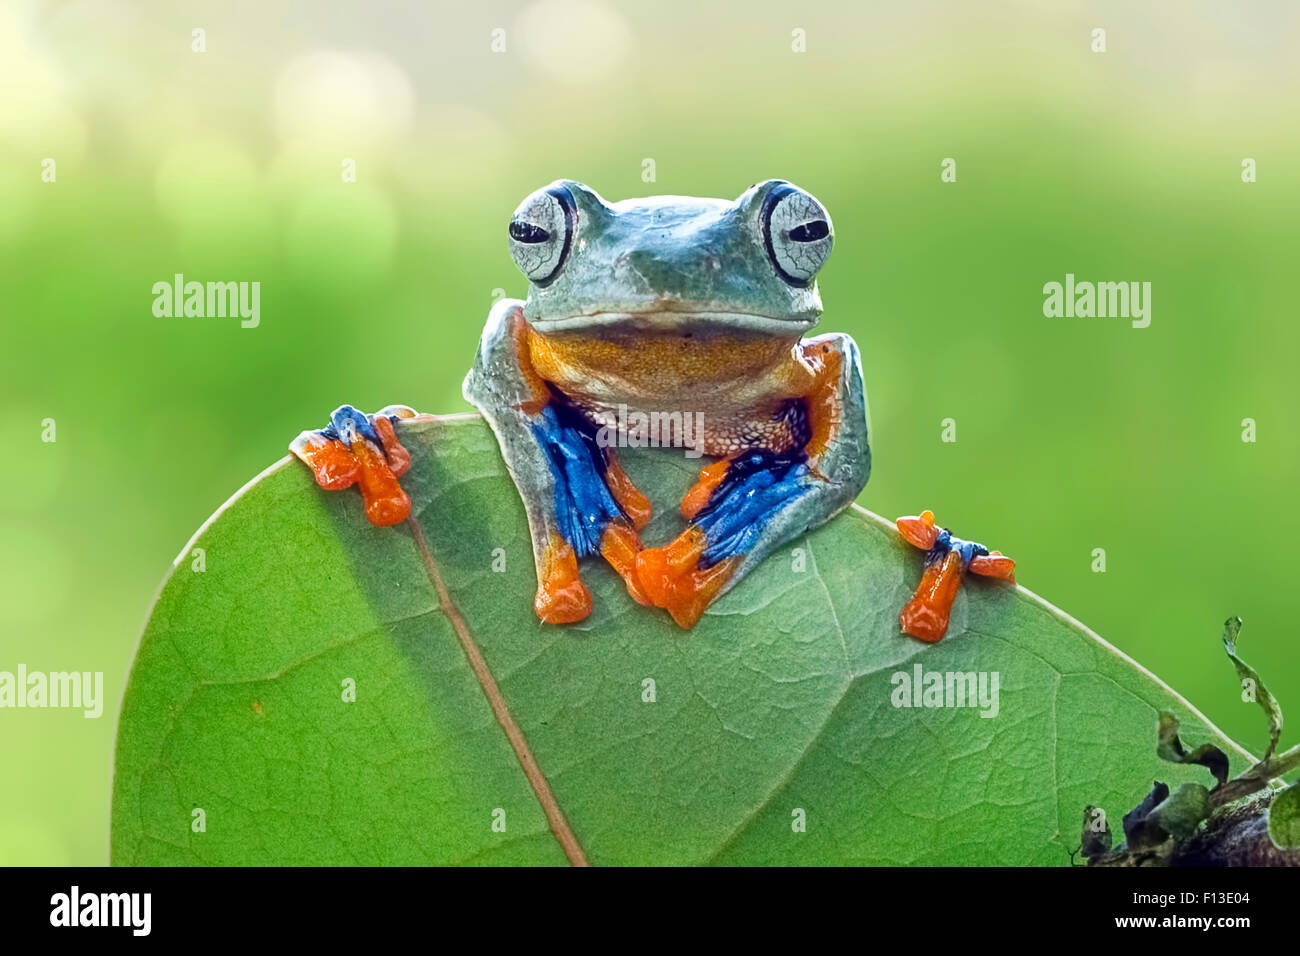 Frog sitting on a leaf - Stock Image